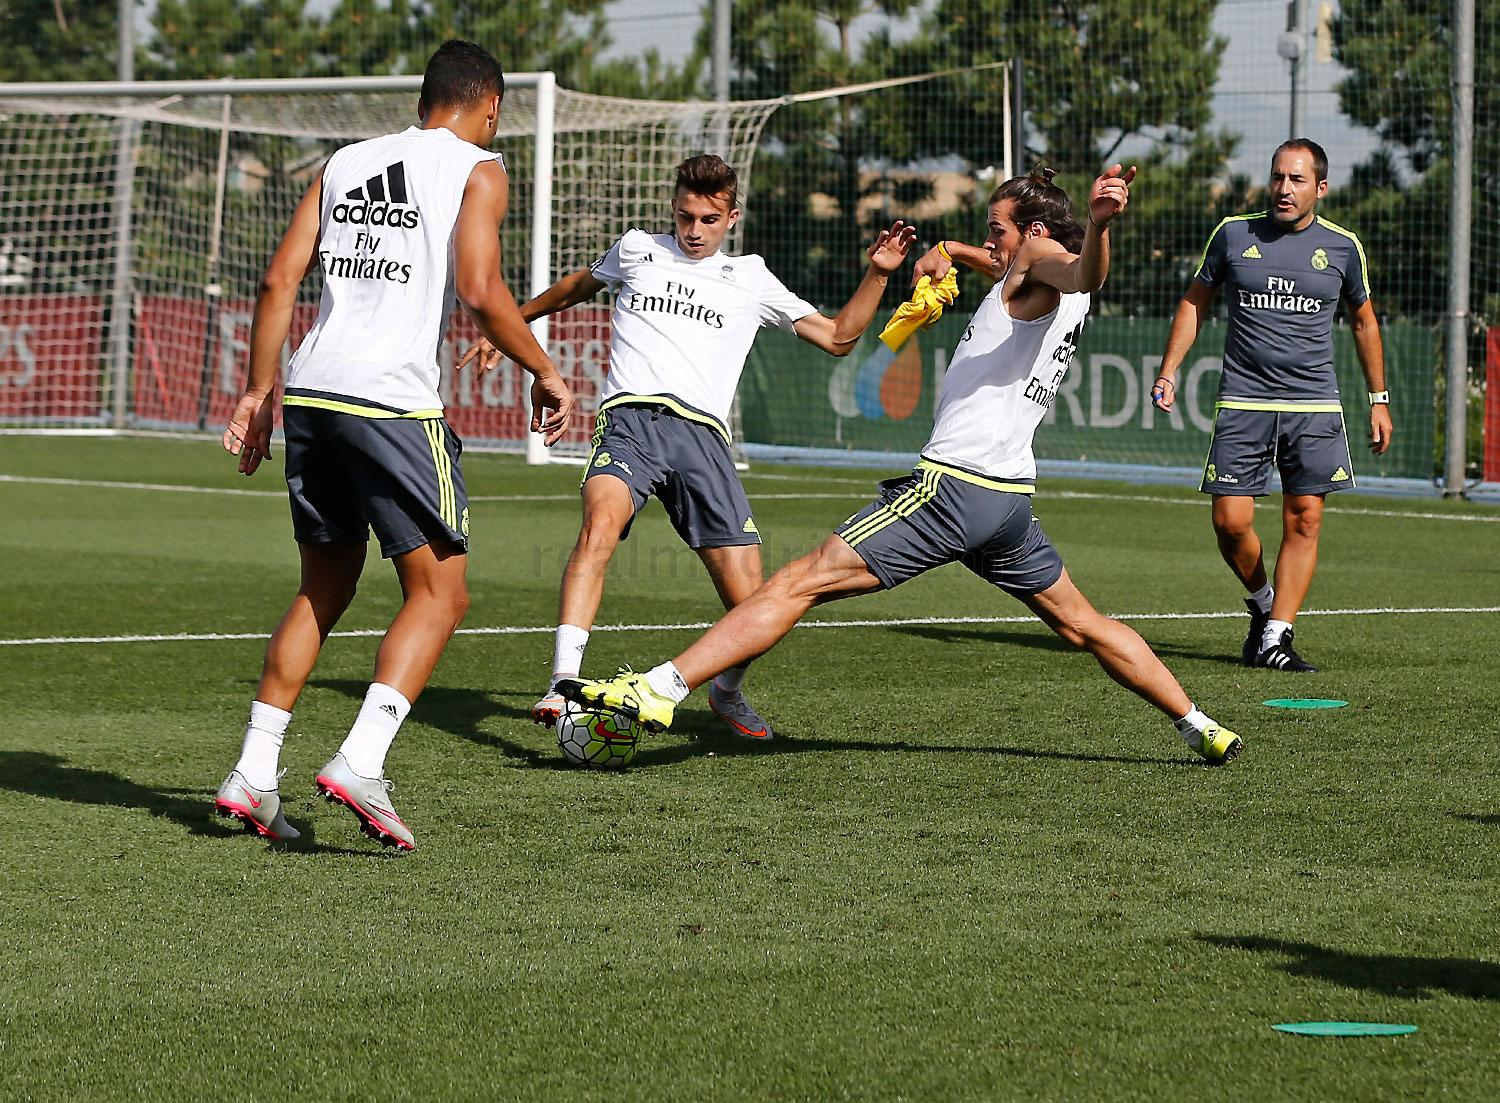 Real Madrid - Entrenamiento del Real Madrid - 07-08-2015